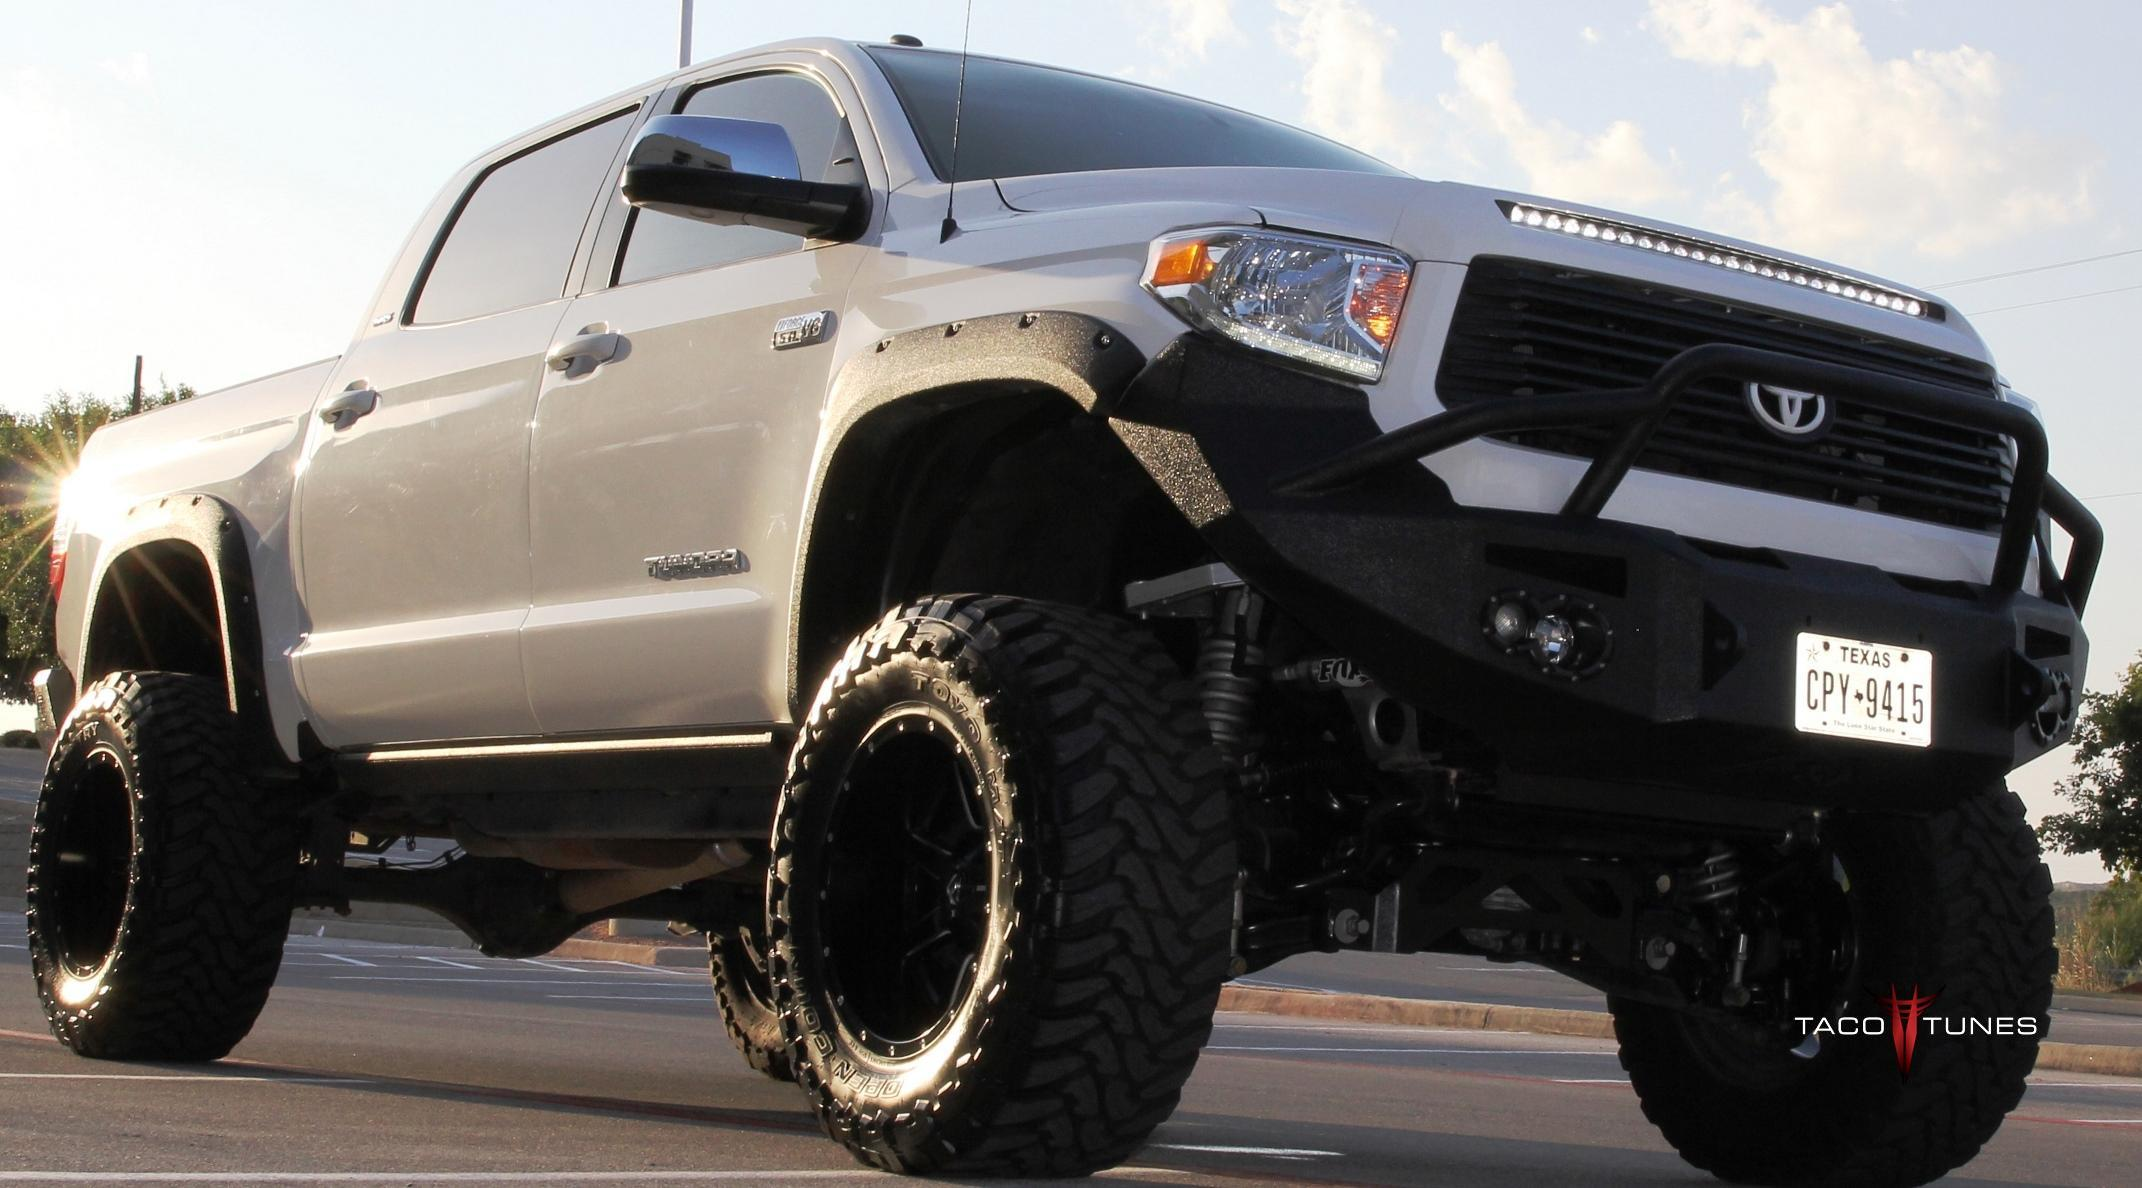 2014 Toyota Tundra Crewmax Lifted For Sale 2 Taco